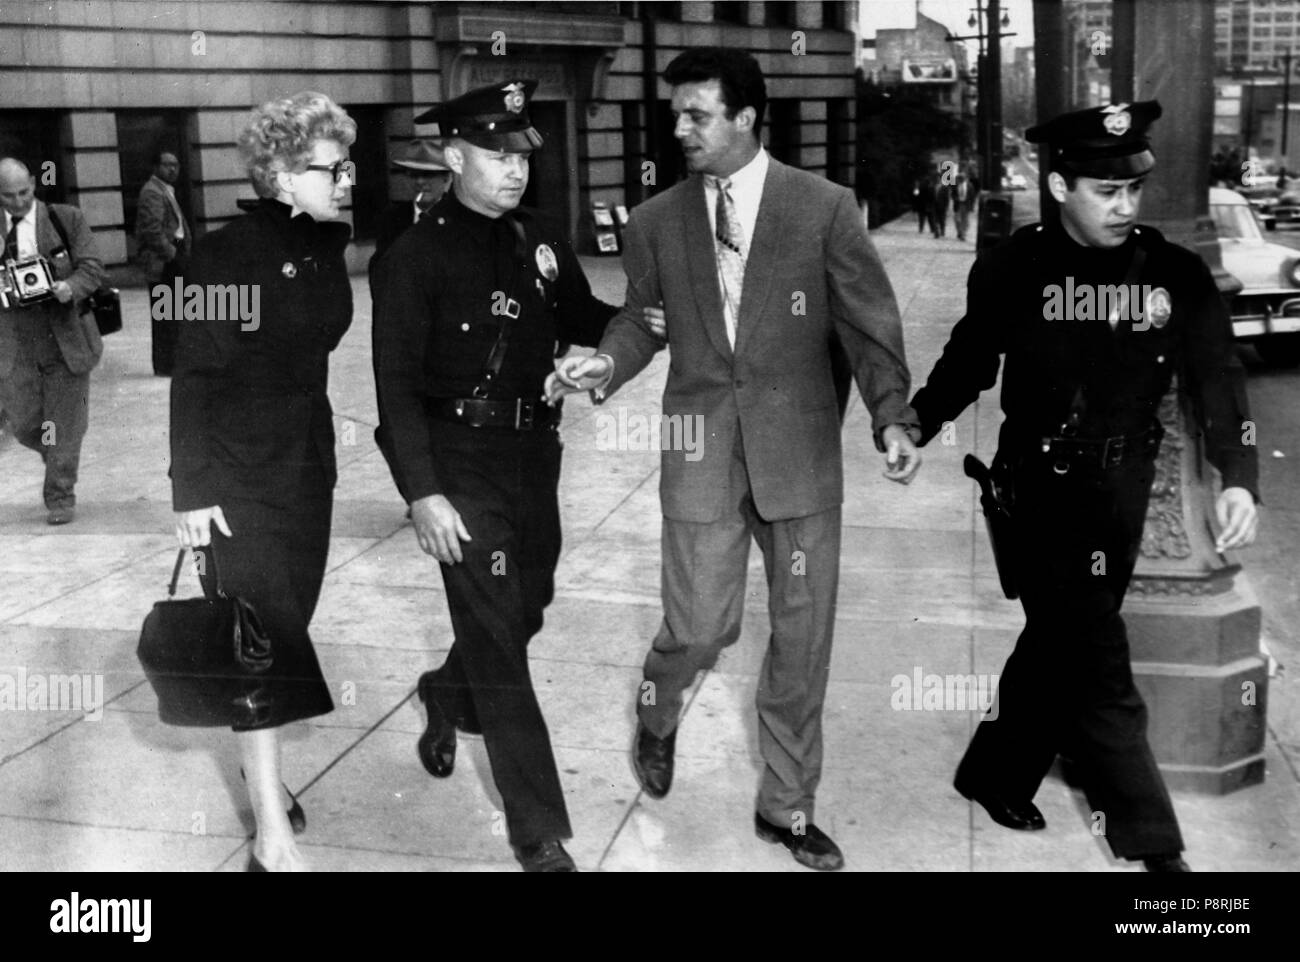 shelley winters, anthony franciosa, accompanied by police after a quarrel with photographers, beverly hills, los angeles, california, April 20, 1957 - Stock Image